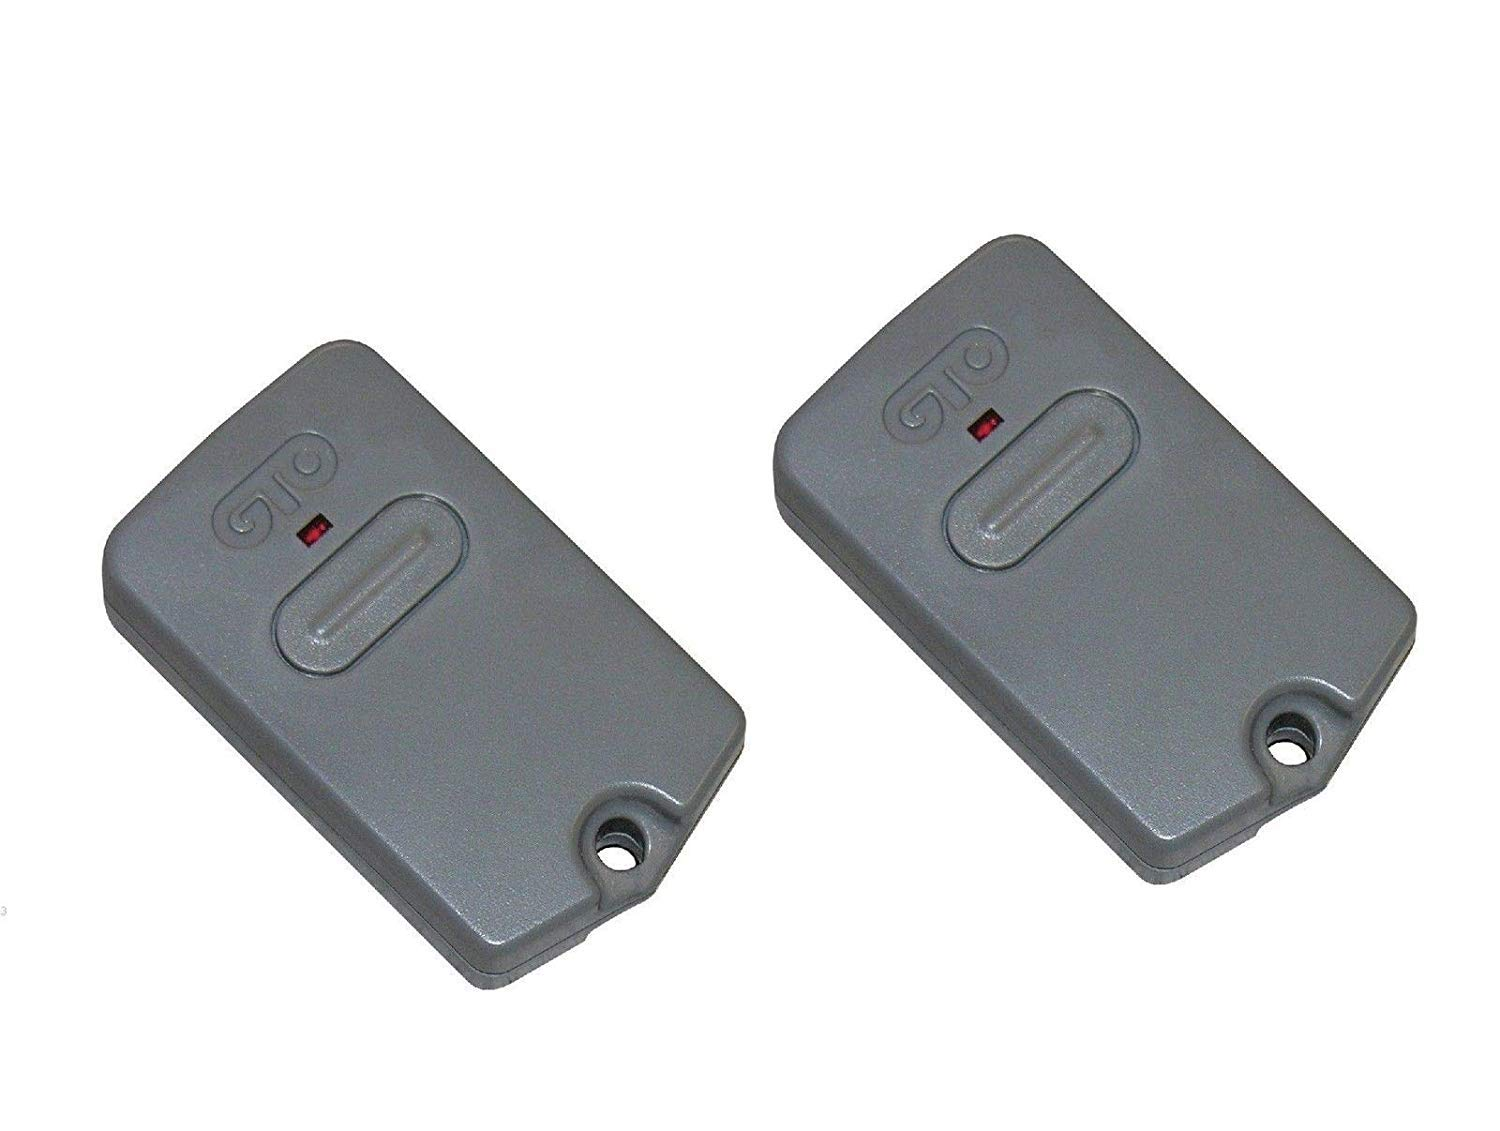 2 Pack GTO/Mighty Mule RB741 Gate Opener Remote Transmitter (Default) by 252118 (Image #1)